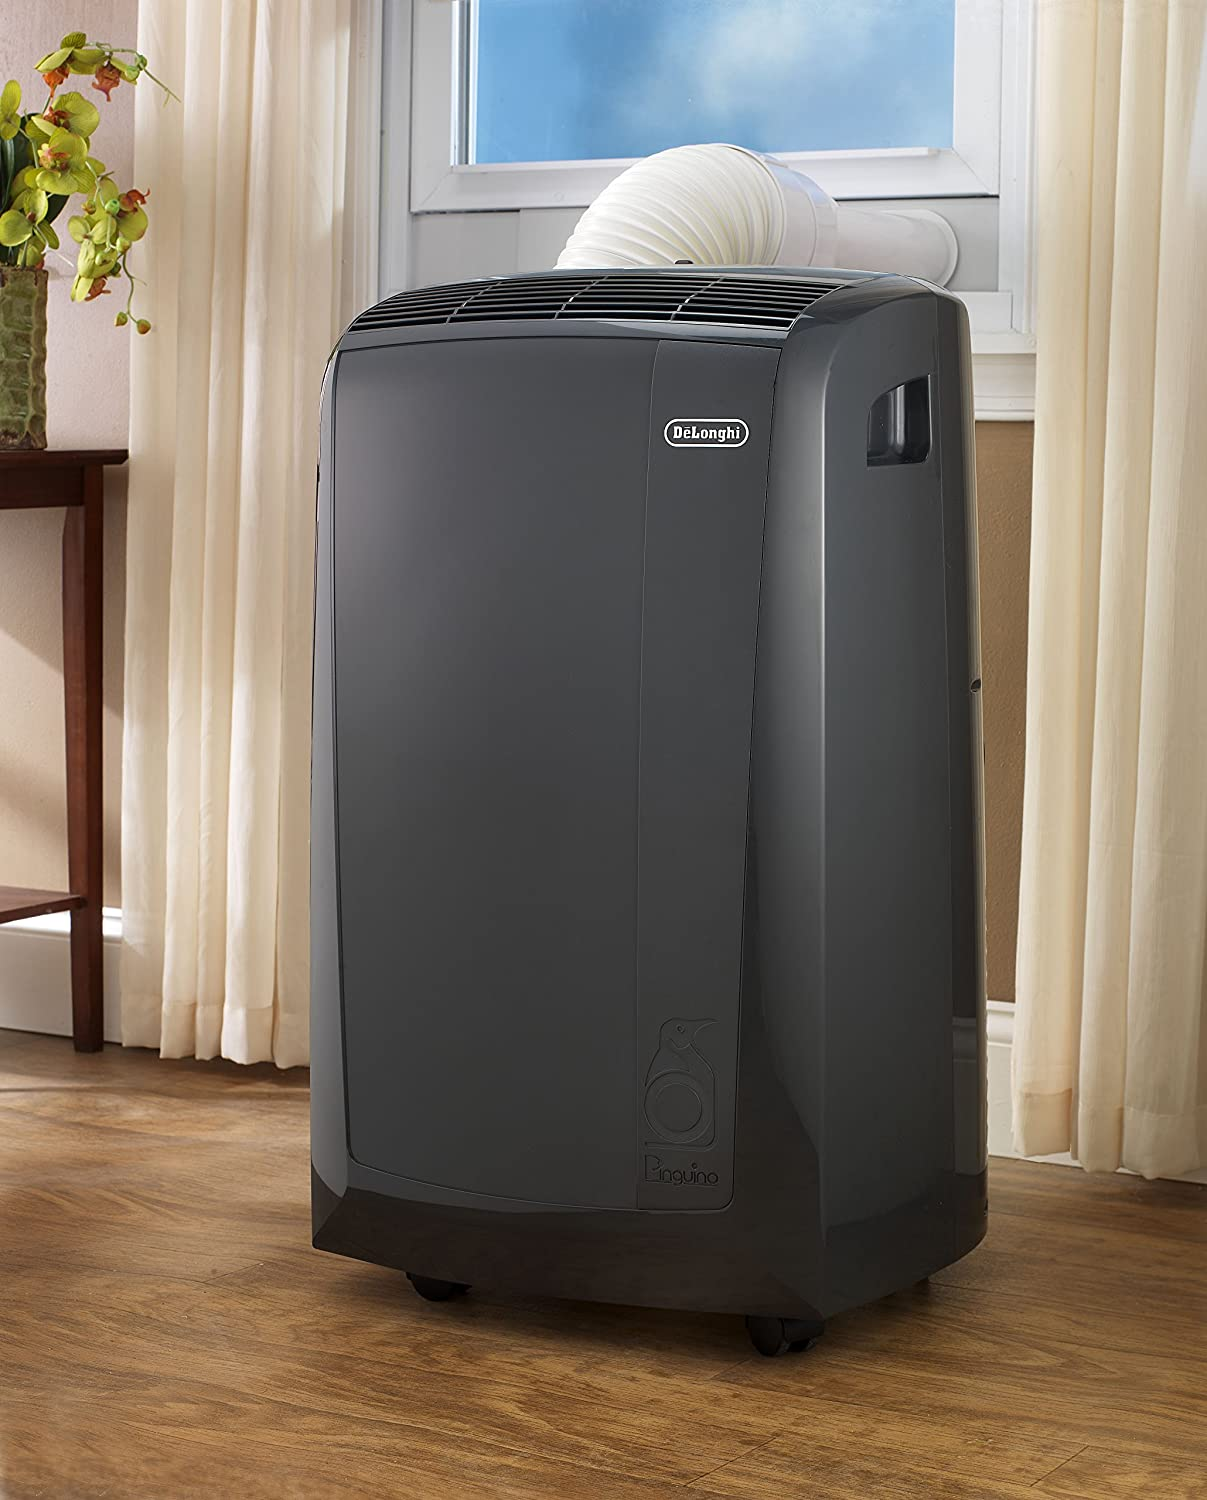 Delonghi portable air conditioner and heater - Amazon Com Delonghi Pacn110ec 11 000 Btu 3 In 1 Portable Air Conditioner Home Kitchen